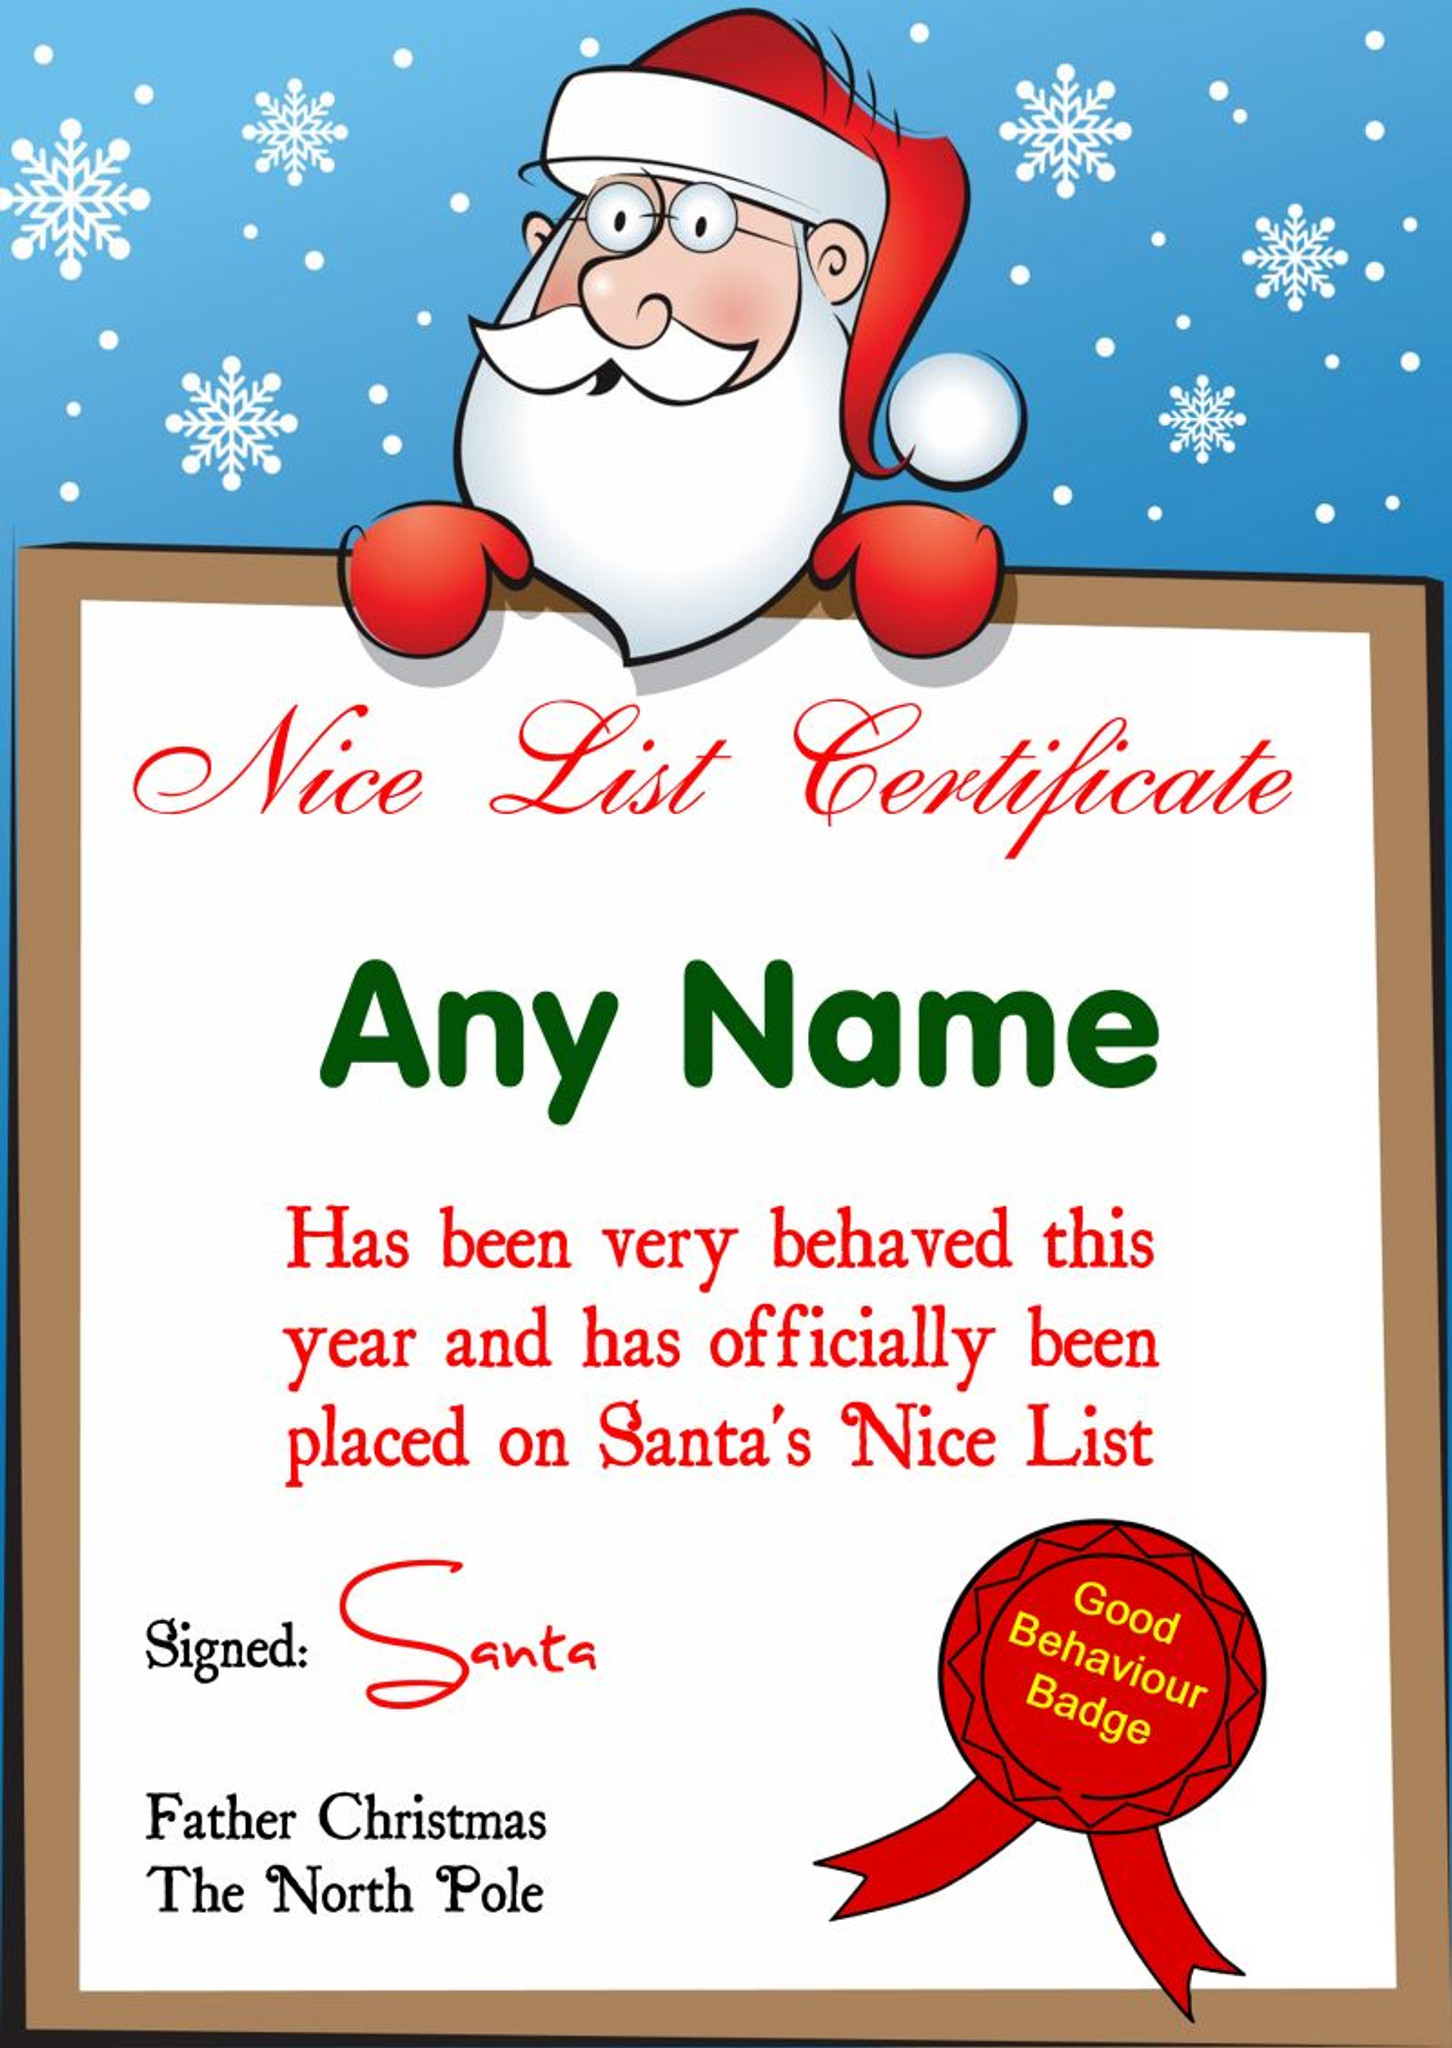 Blue Snowflakes Personalised Christmas Santa S Nice List Certificate Party Animal Print